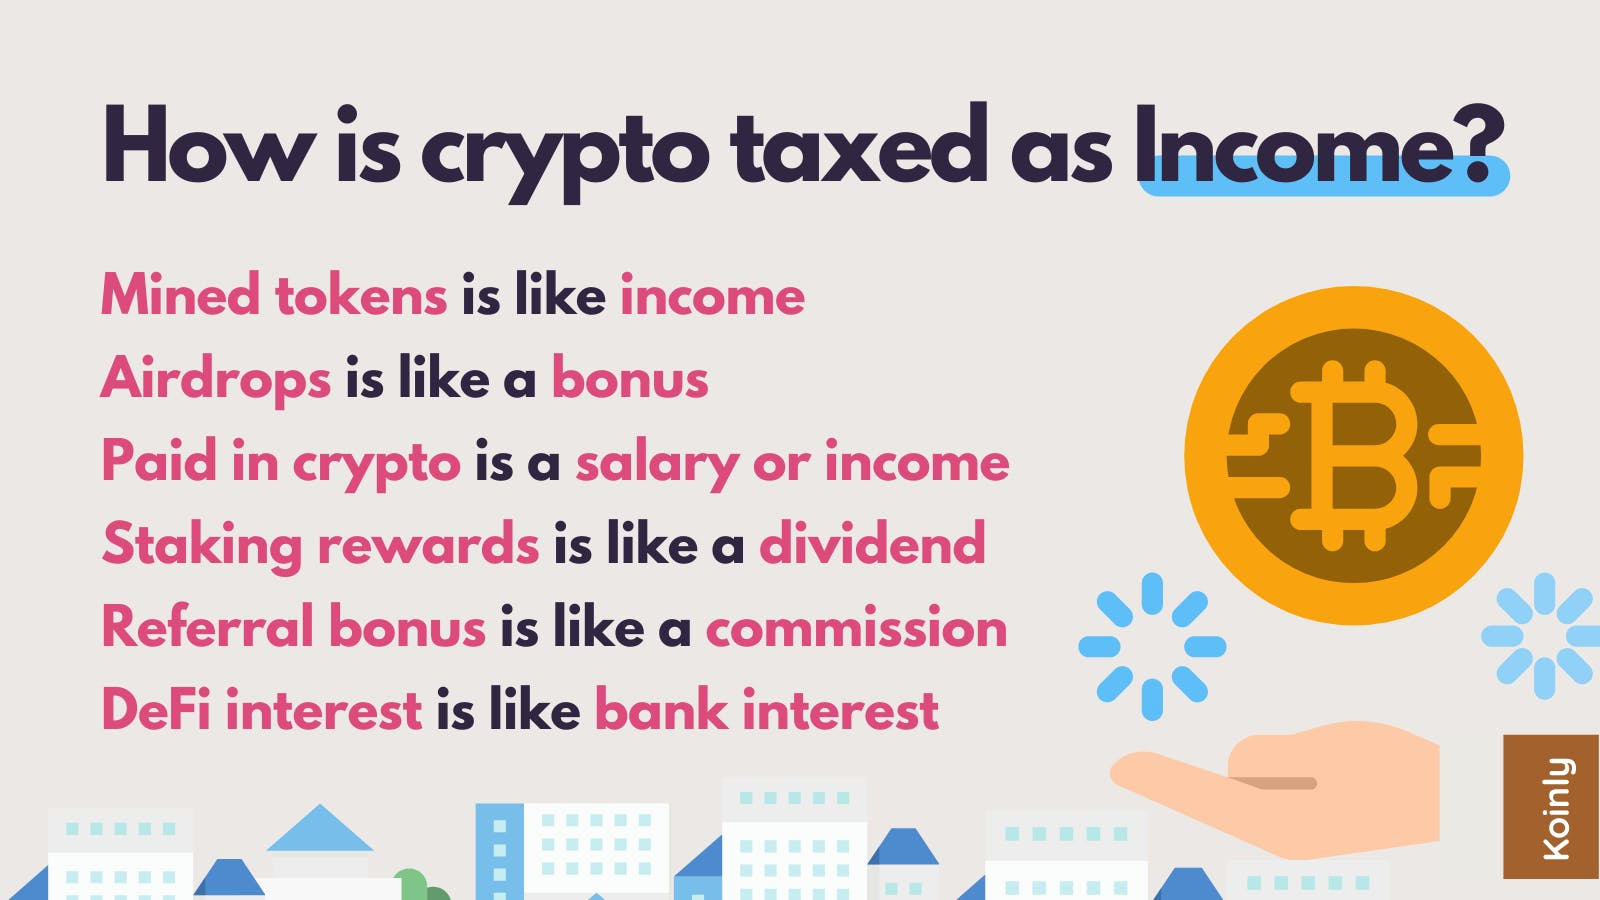 Cryptocurrency gains can be treated as income tax